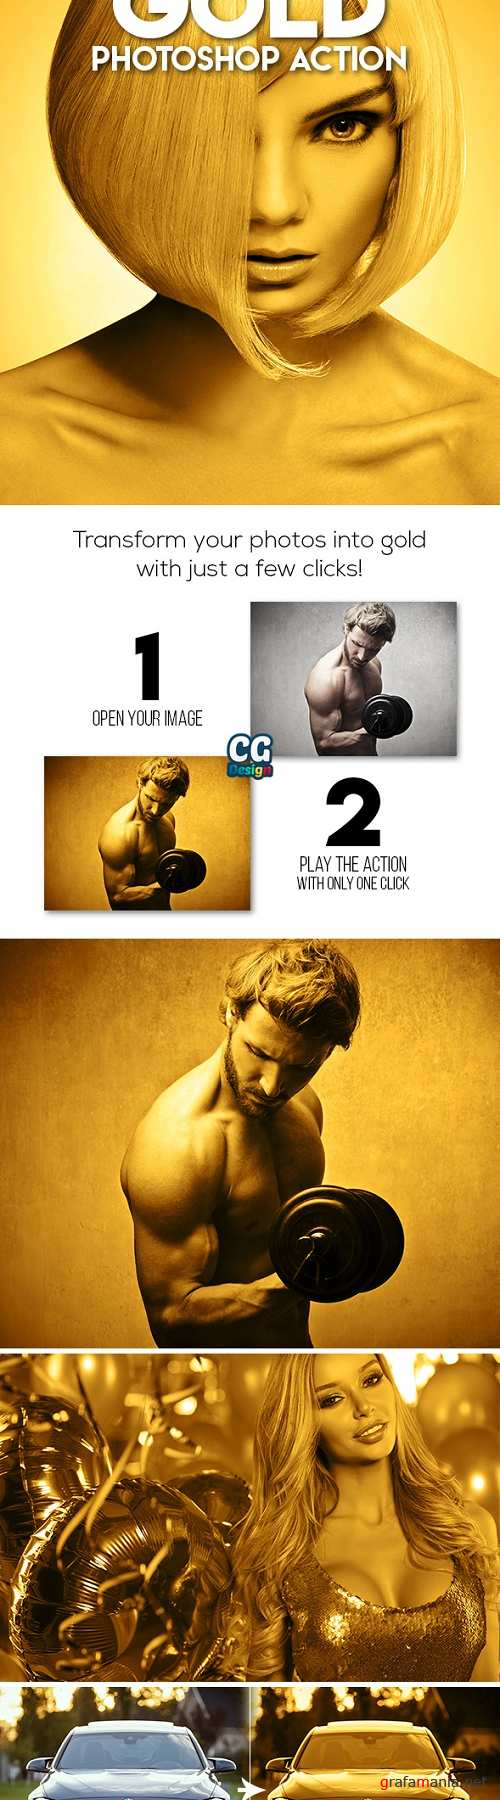 MicroPro Gold Photoshop Action 21194259